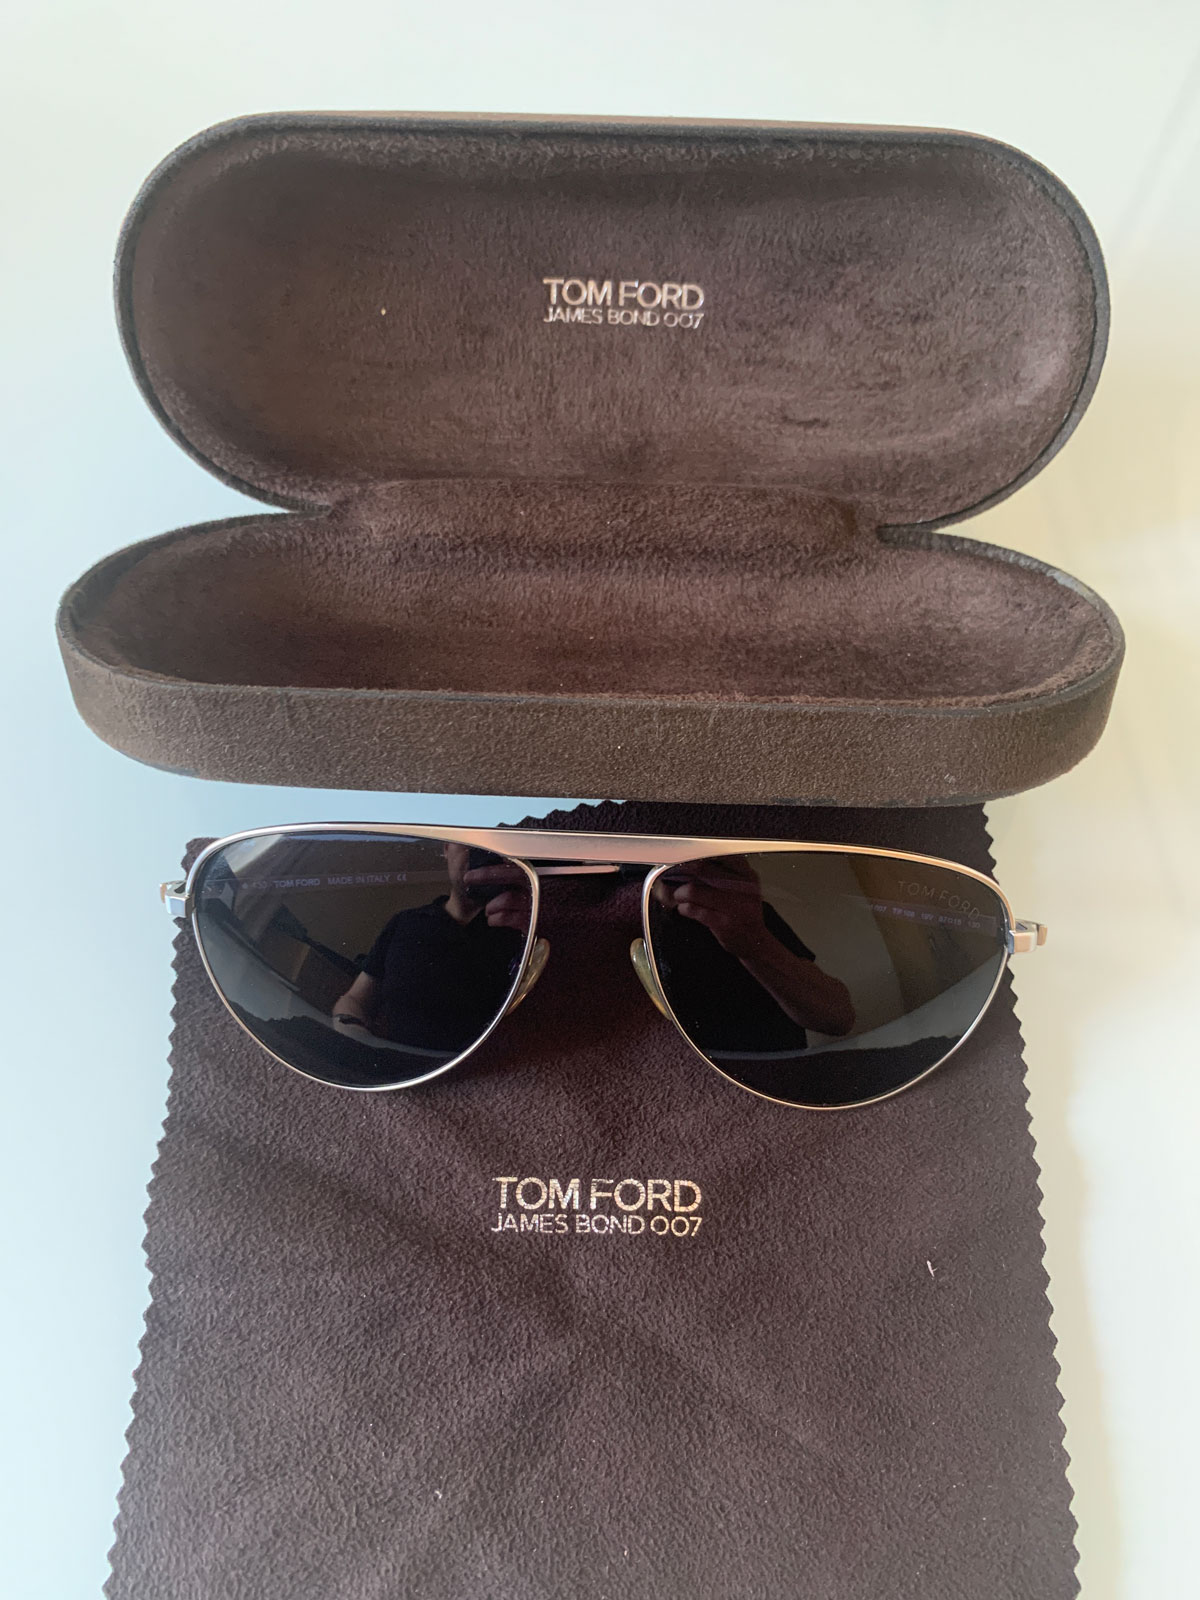 TF108 tom ford